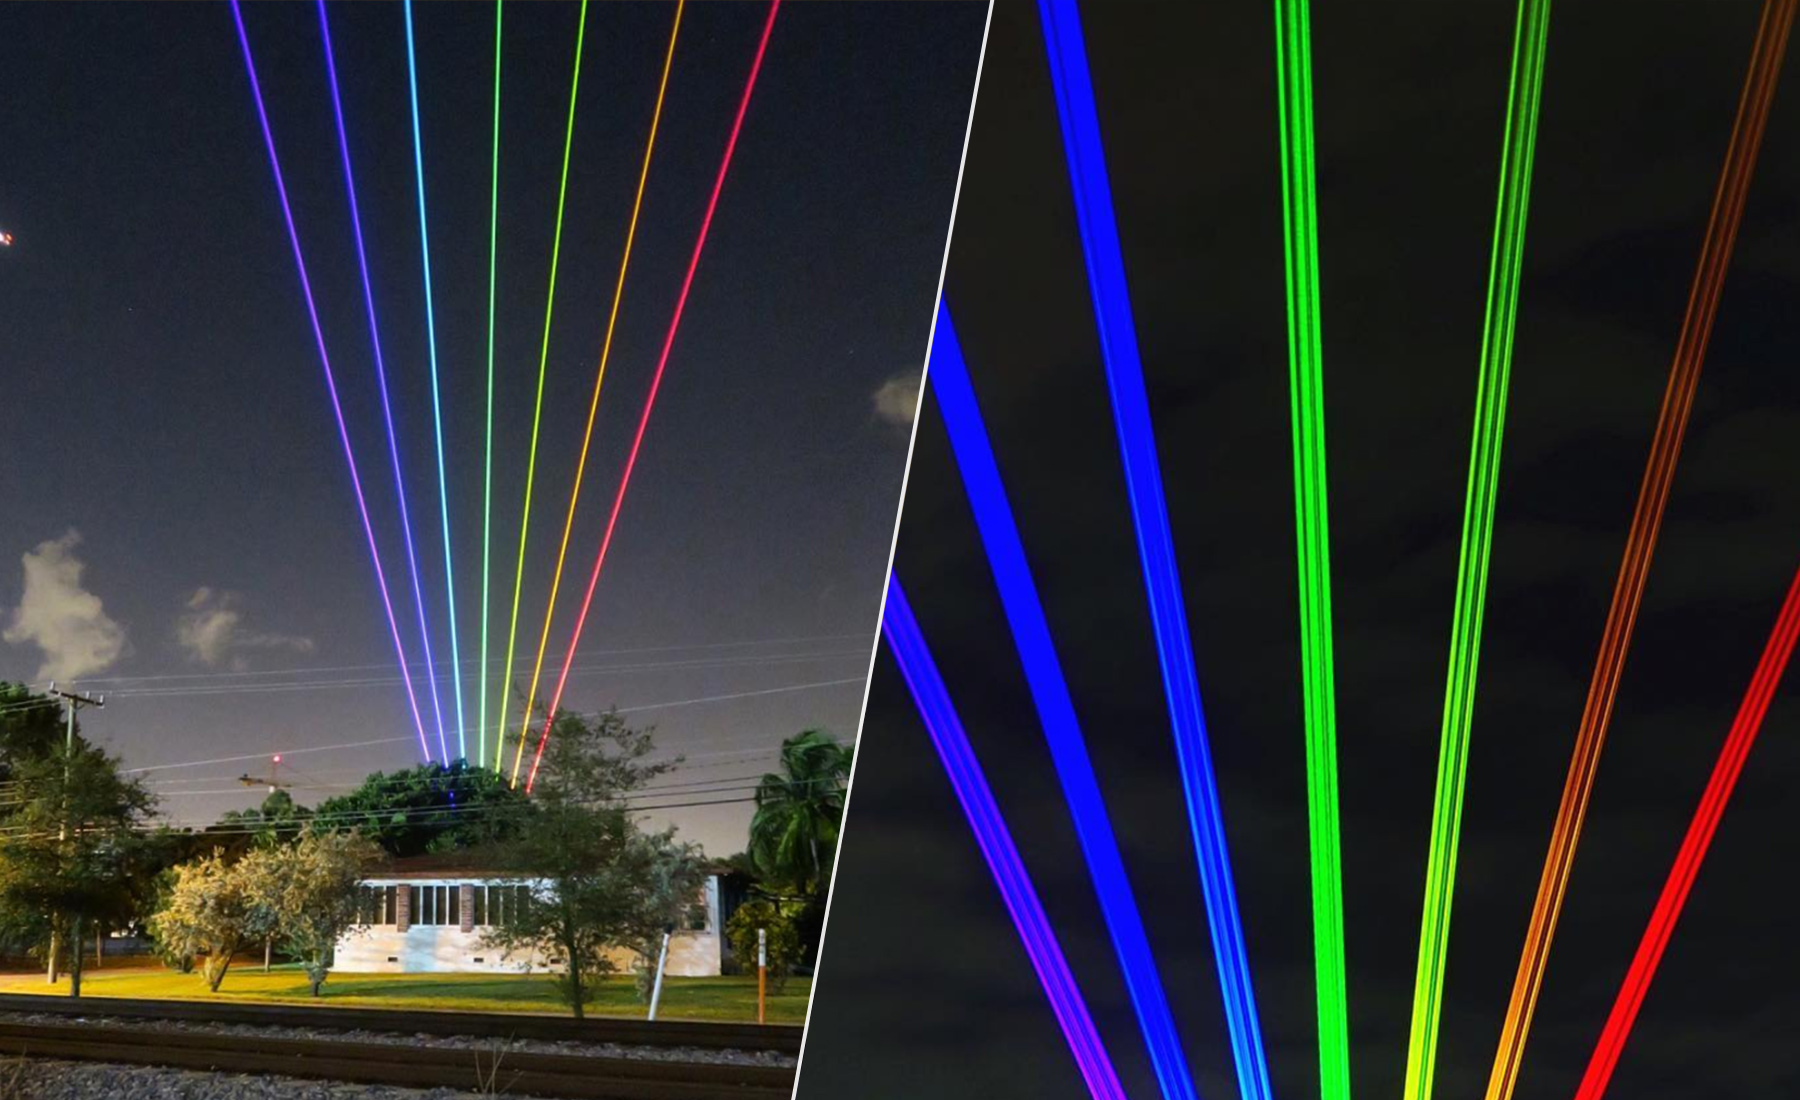 A beautiful rainbow art light beam installation from Miami Beach, which can be seen from tens of miles away.